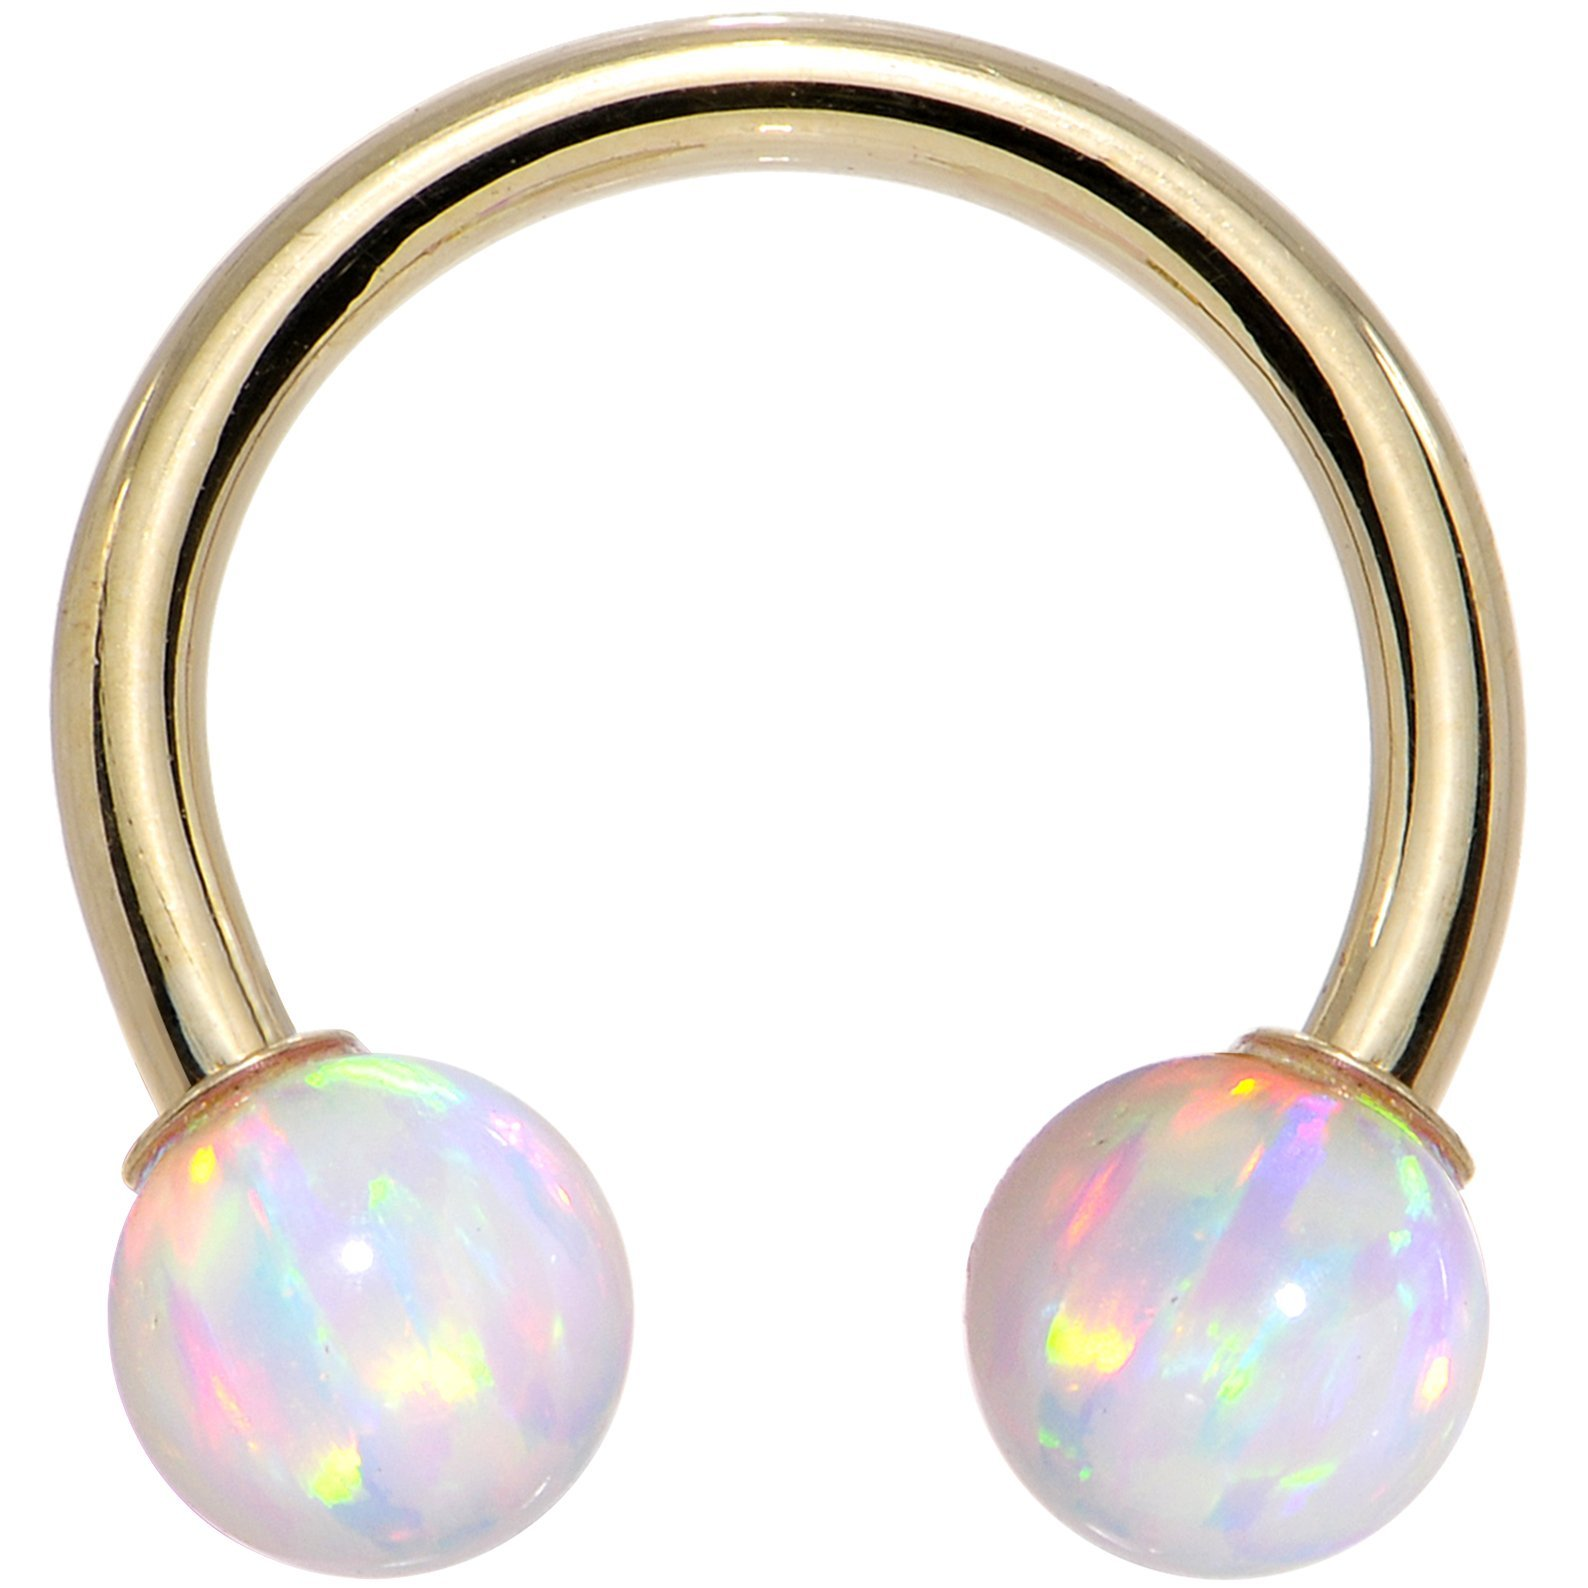 Body Candy 14k Yellow Gold White Synthetic Opal Horseshoe Piercing 14 Gauge 7/16'' by Body Candy